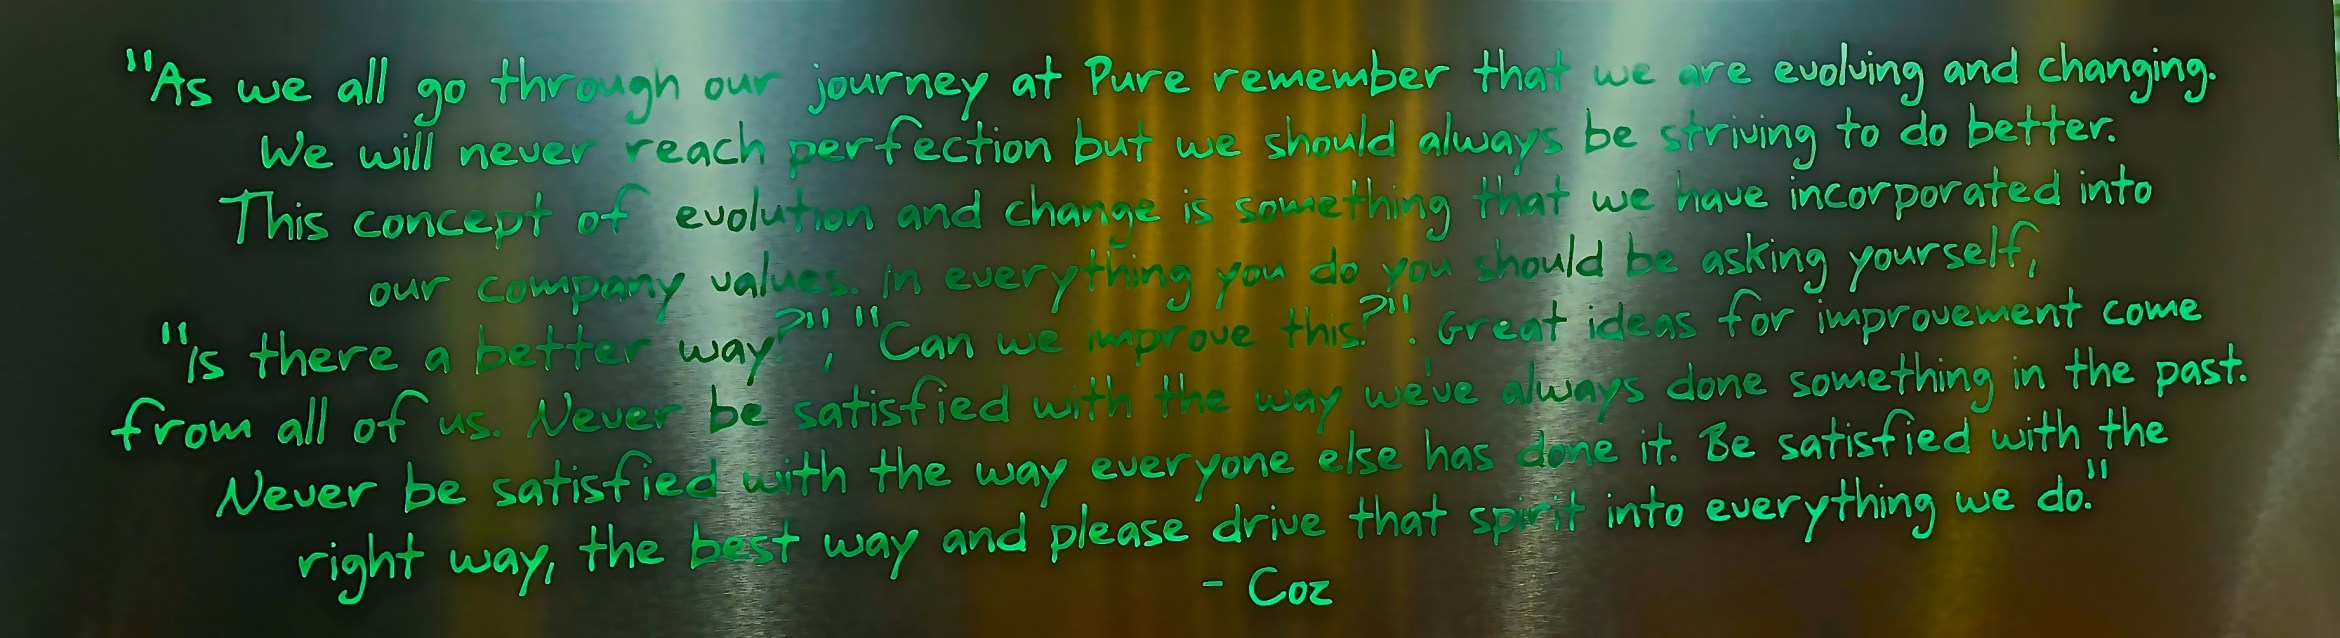 Coz Journey Message IMG-1885 cropped